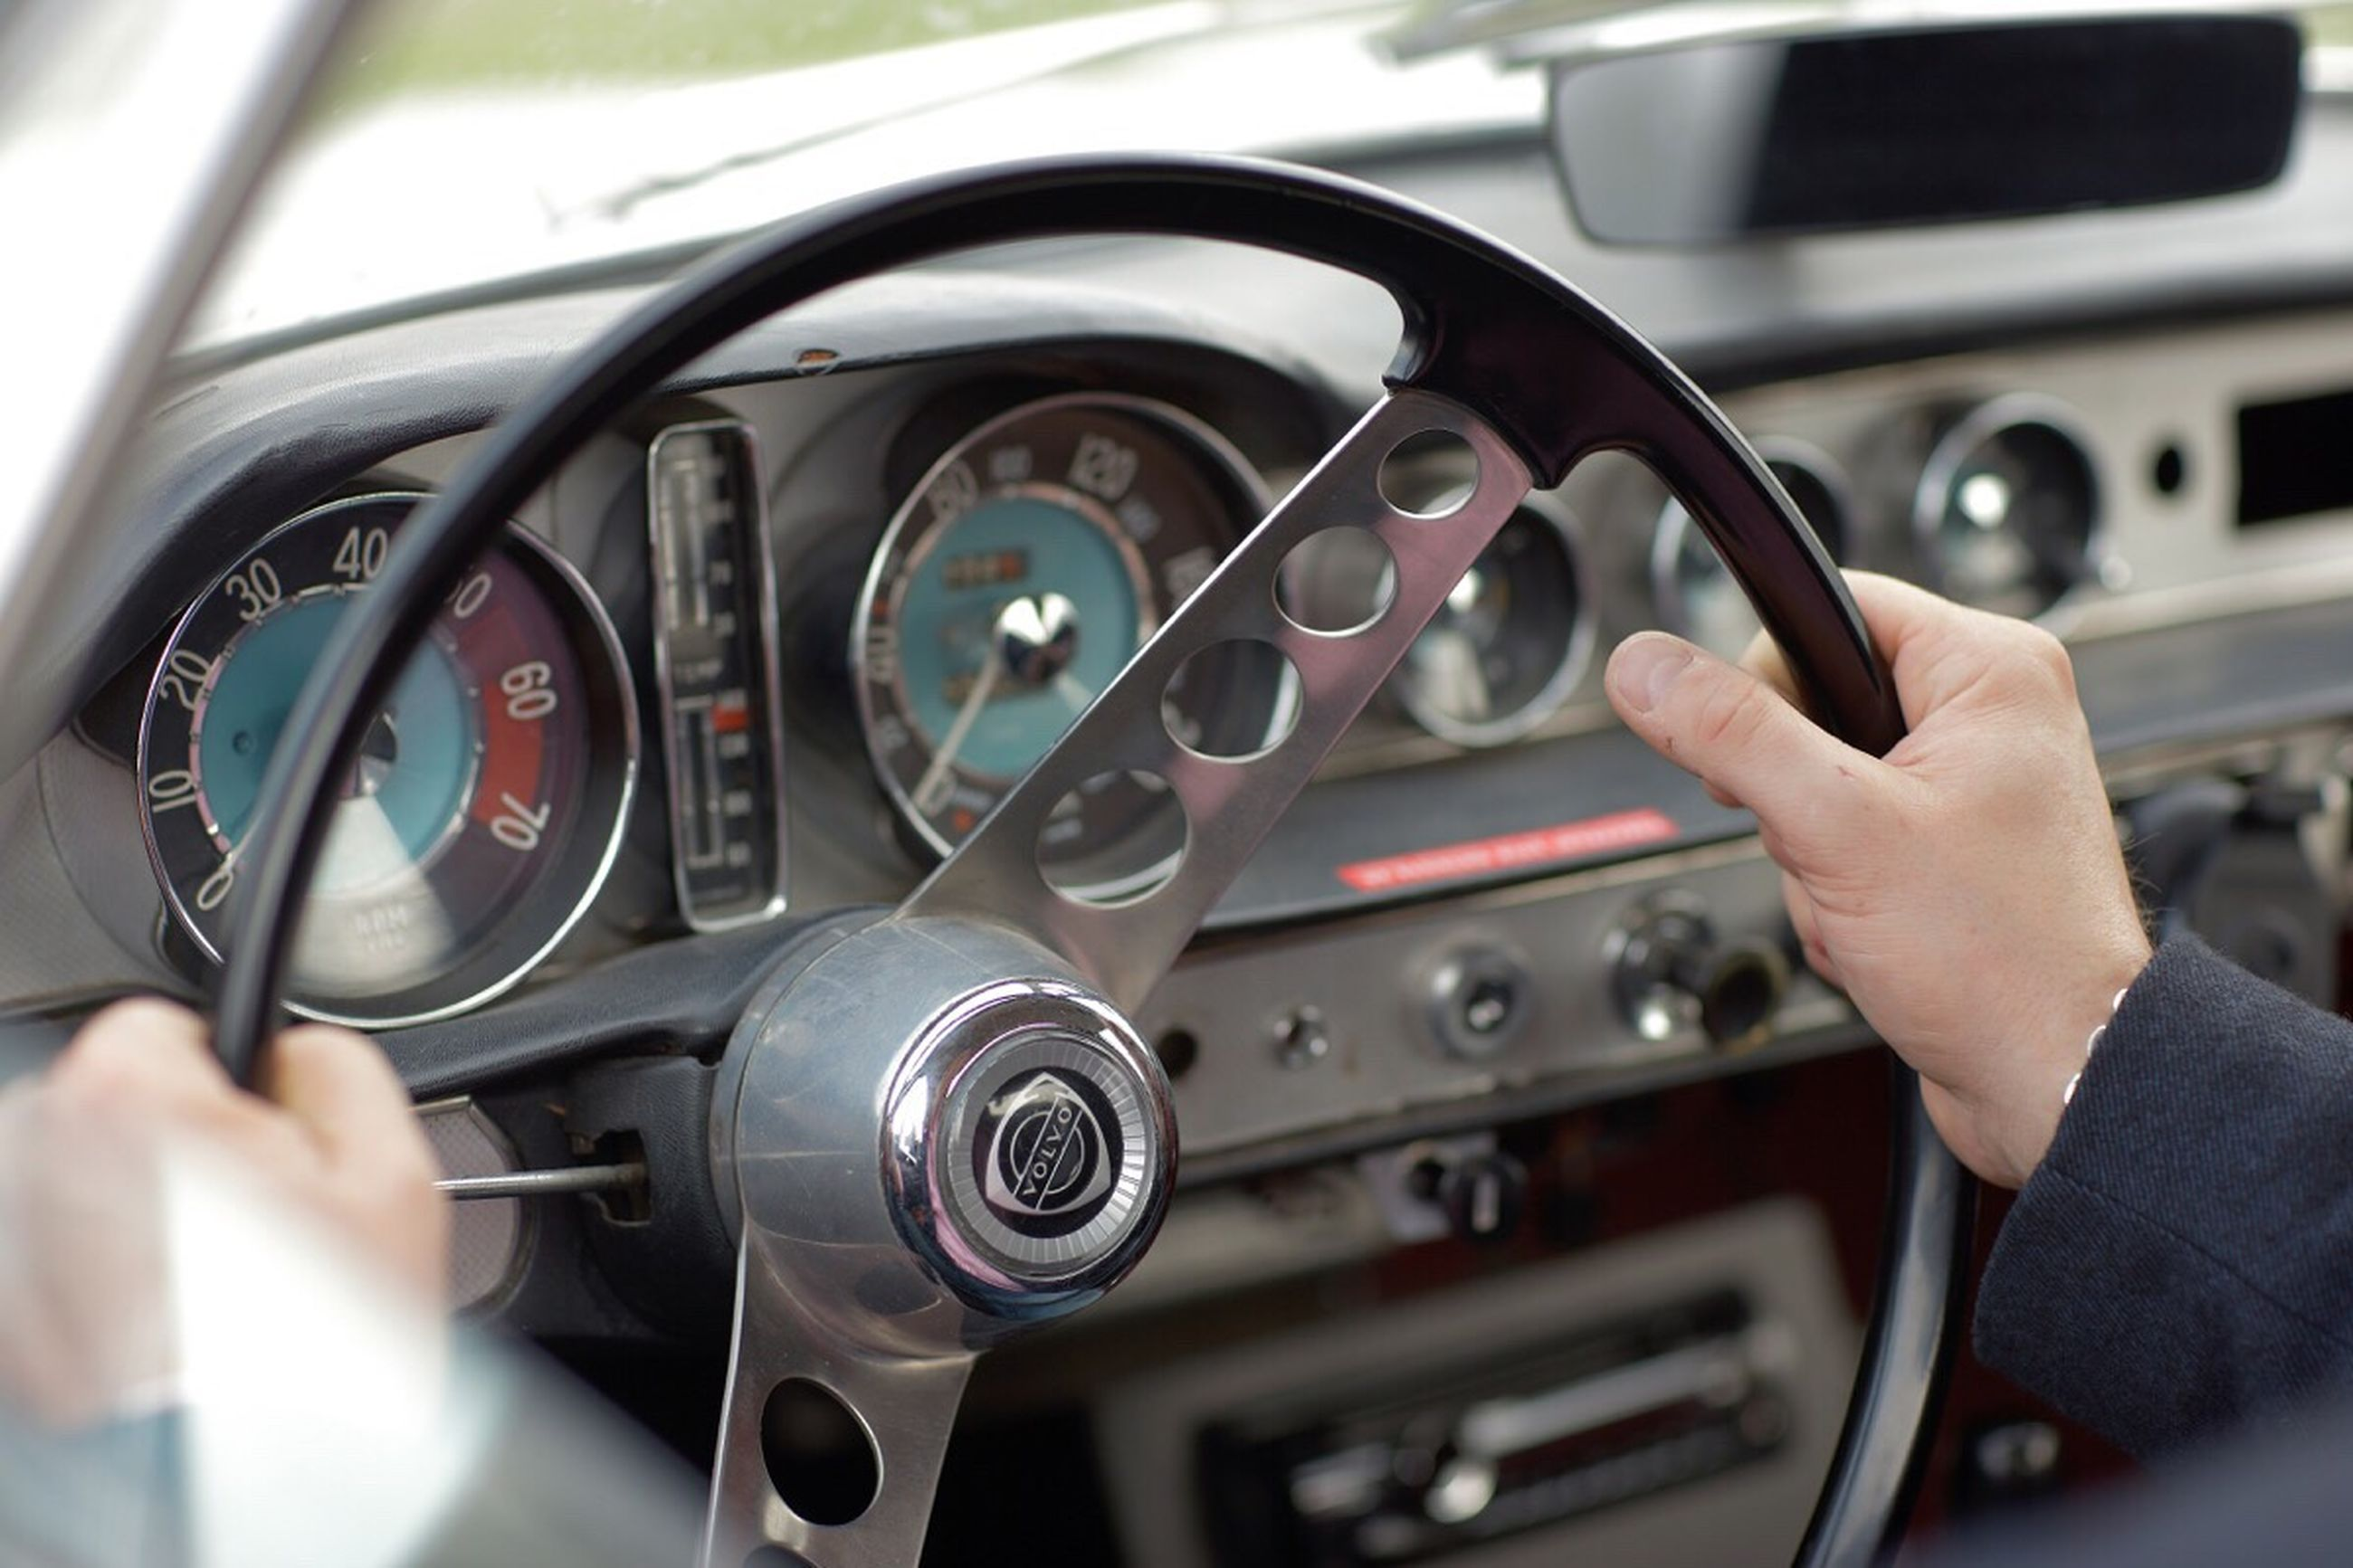 car, human hand, transportation, human body part, vehicle interior, one person, adults only, adult, close-up, one woman only, lever, people, dashboard, technology, control panel, only women, indoors, day, gauge, millionnaire